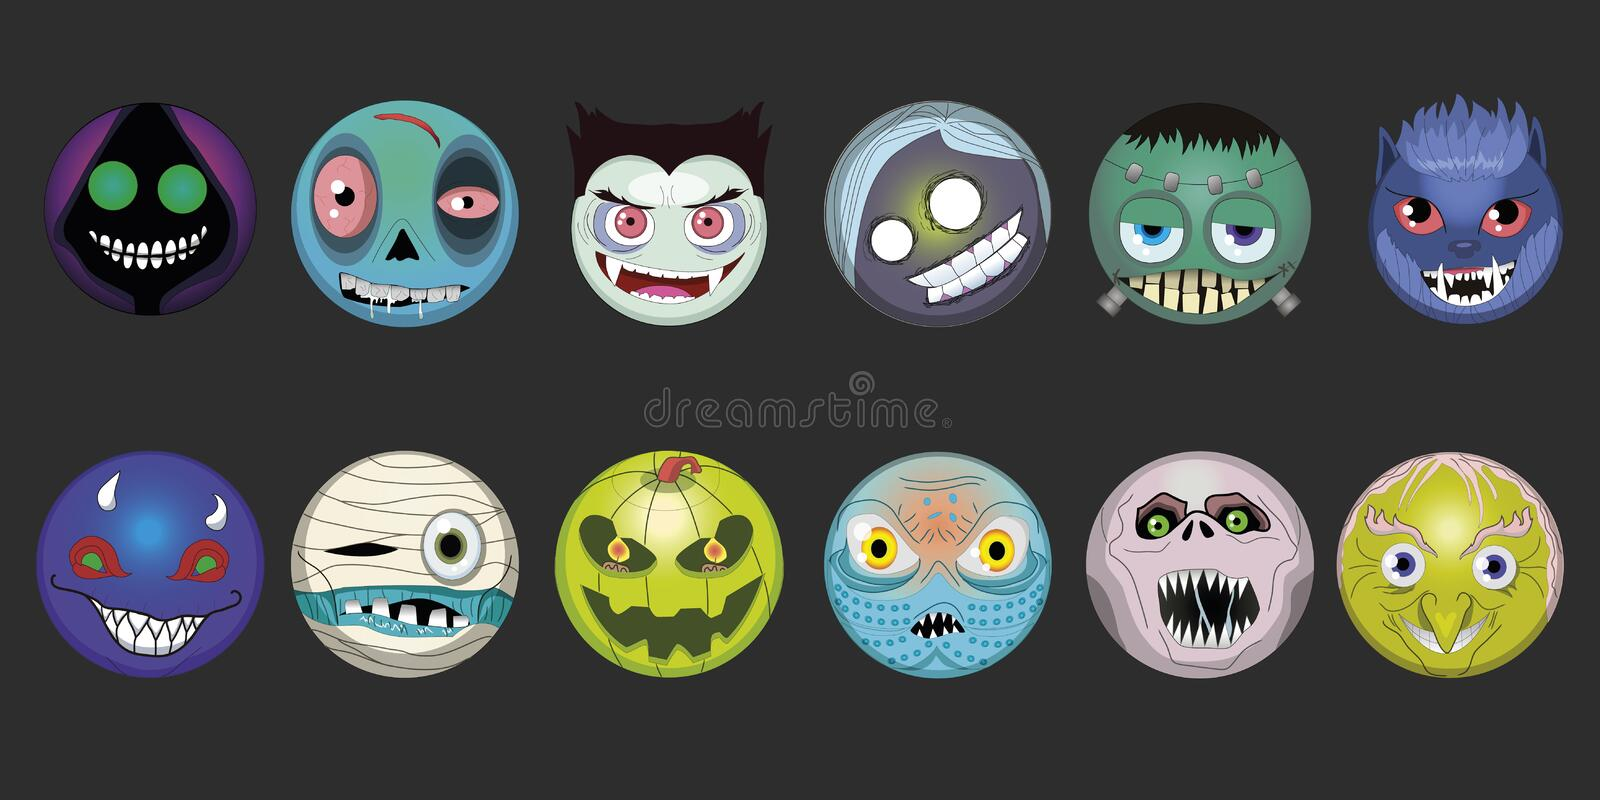 Cartoon emoji Halloween monsters smile face Frankenstein ghost emoticons werewolf smilling mummy zombie vampire vector 2d royalty free illustration